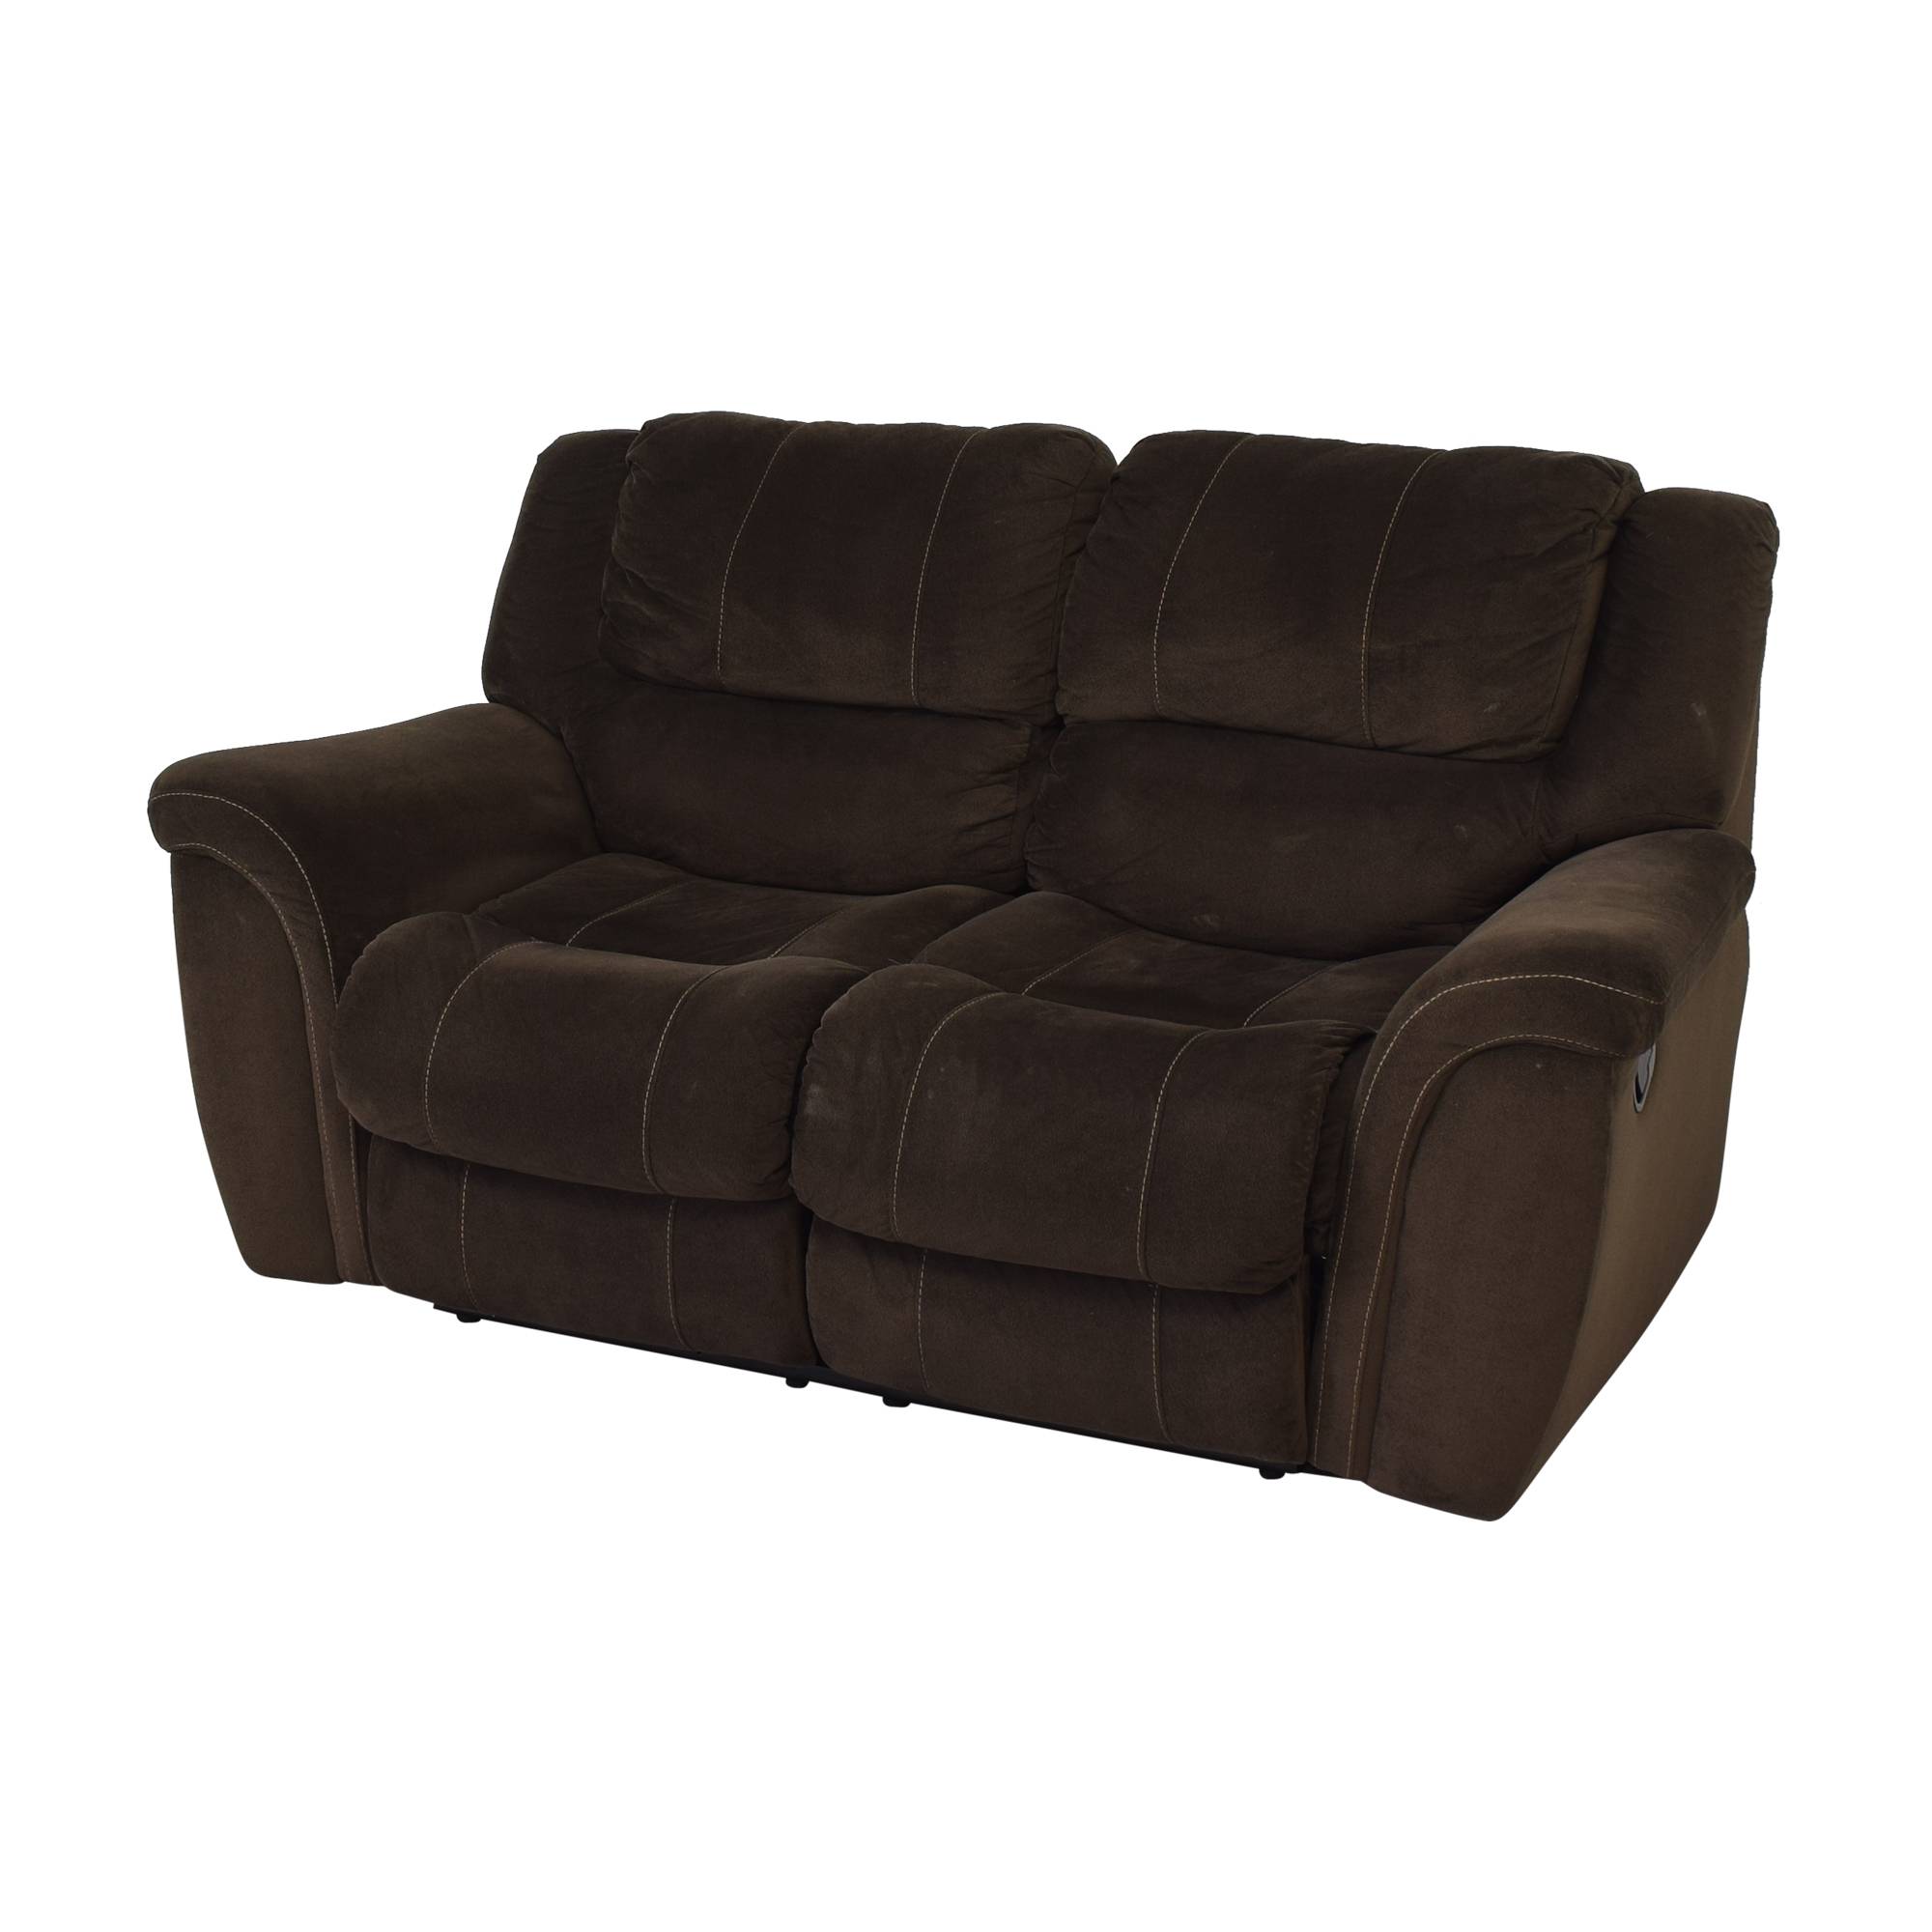 buy Raymour & Flanigan Double Recliner Loveseat Raymour & Flanigan Sofas